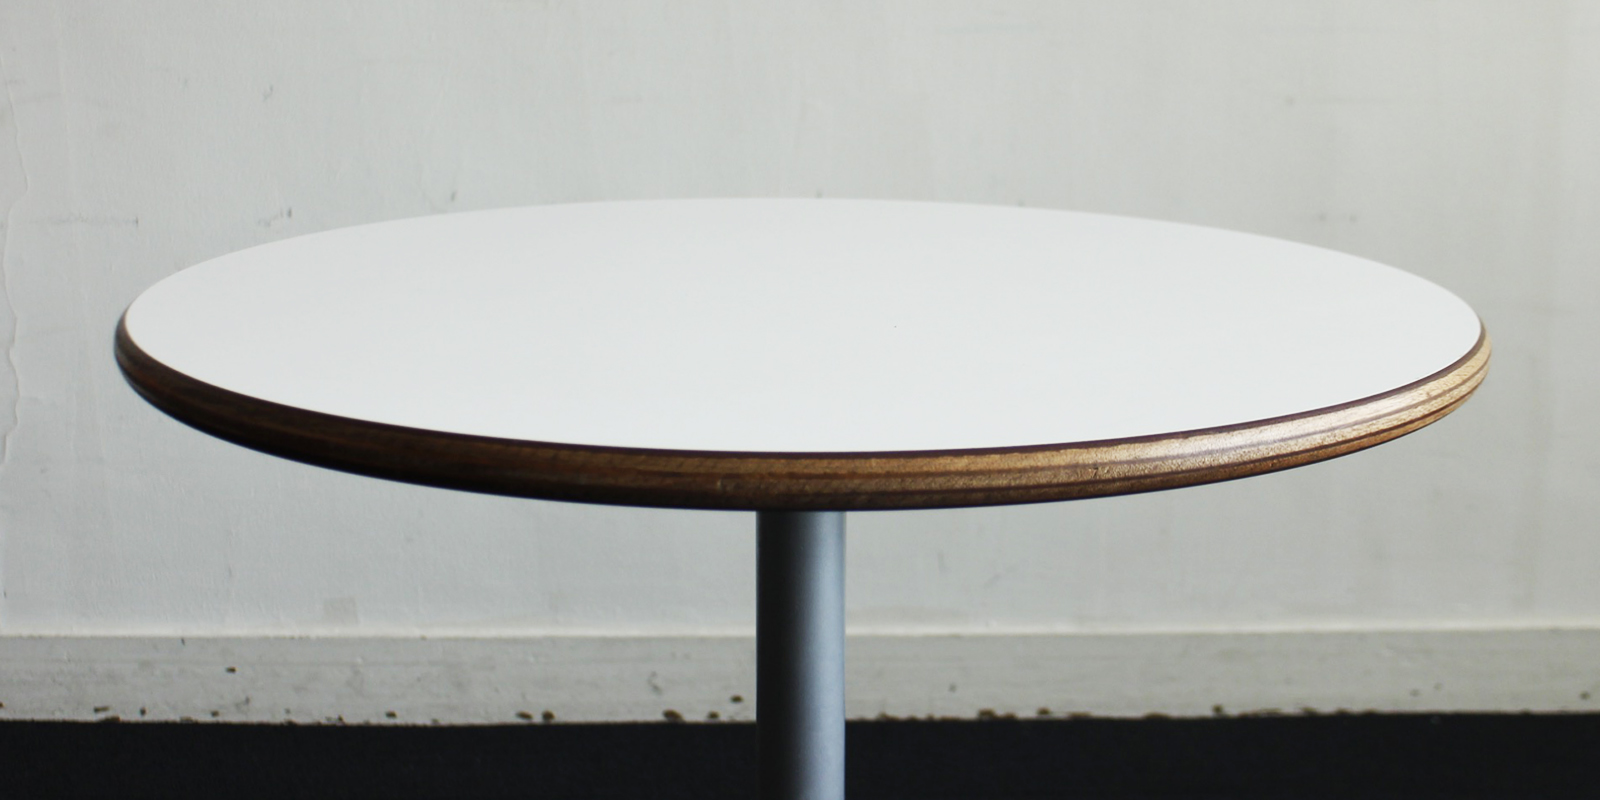 【sold out】LAUAN TABLE 02